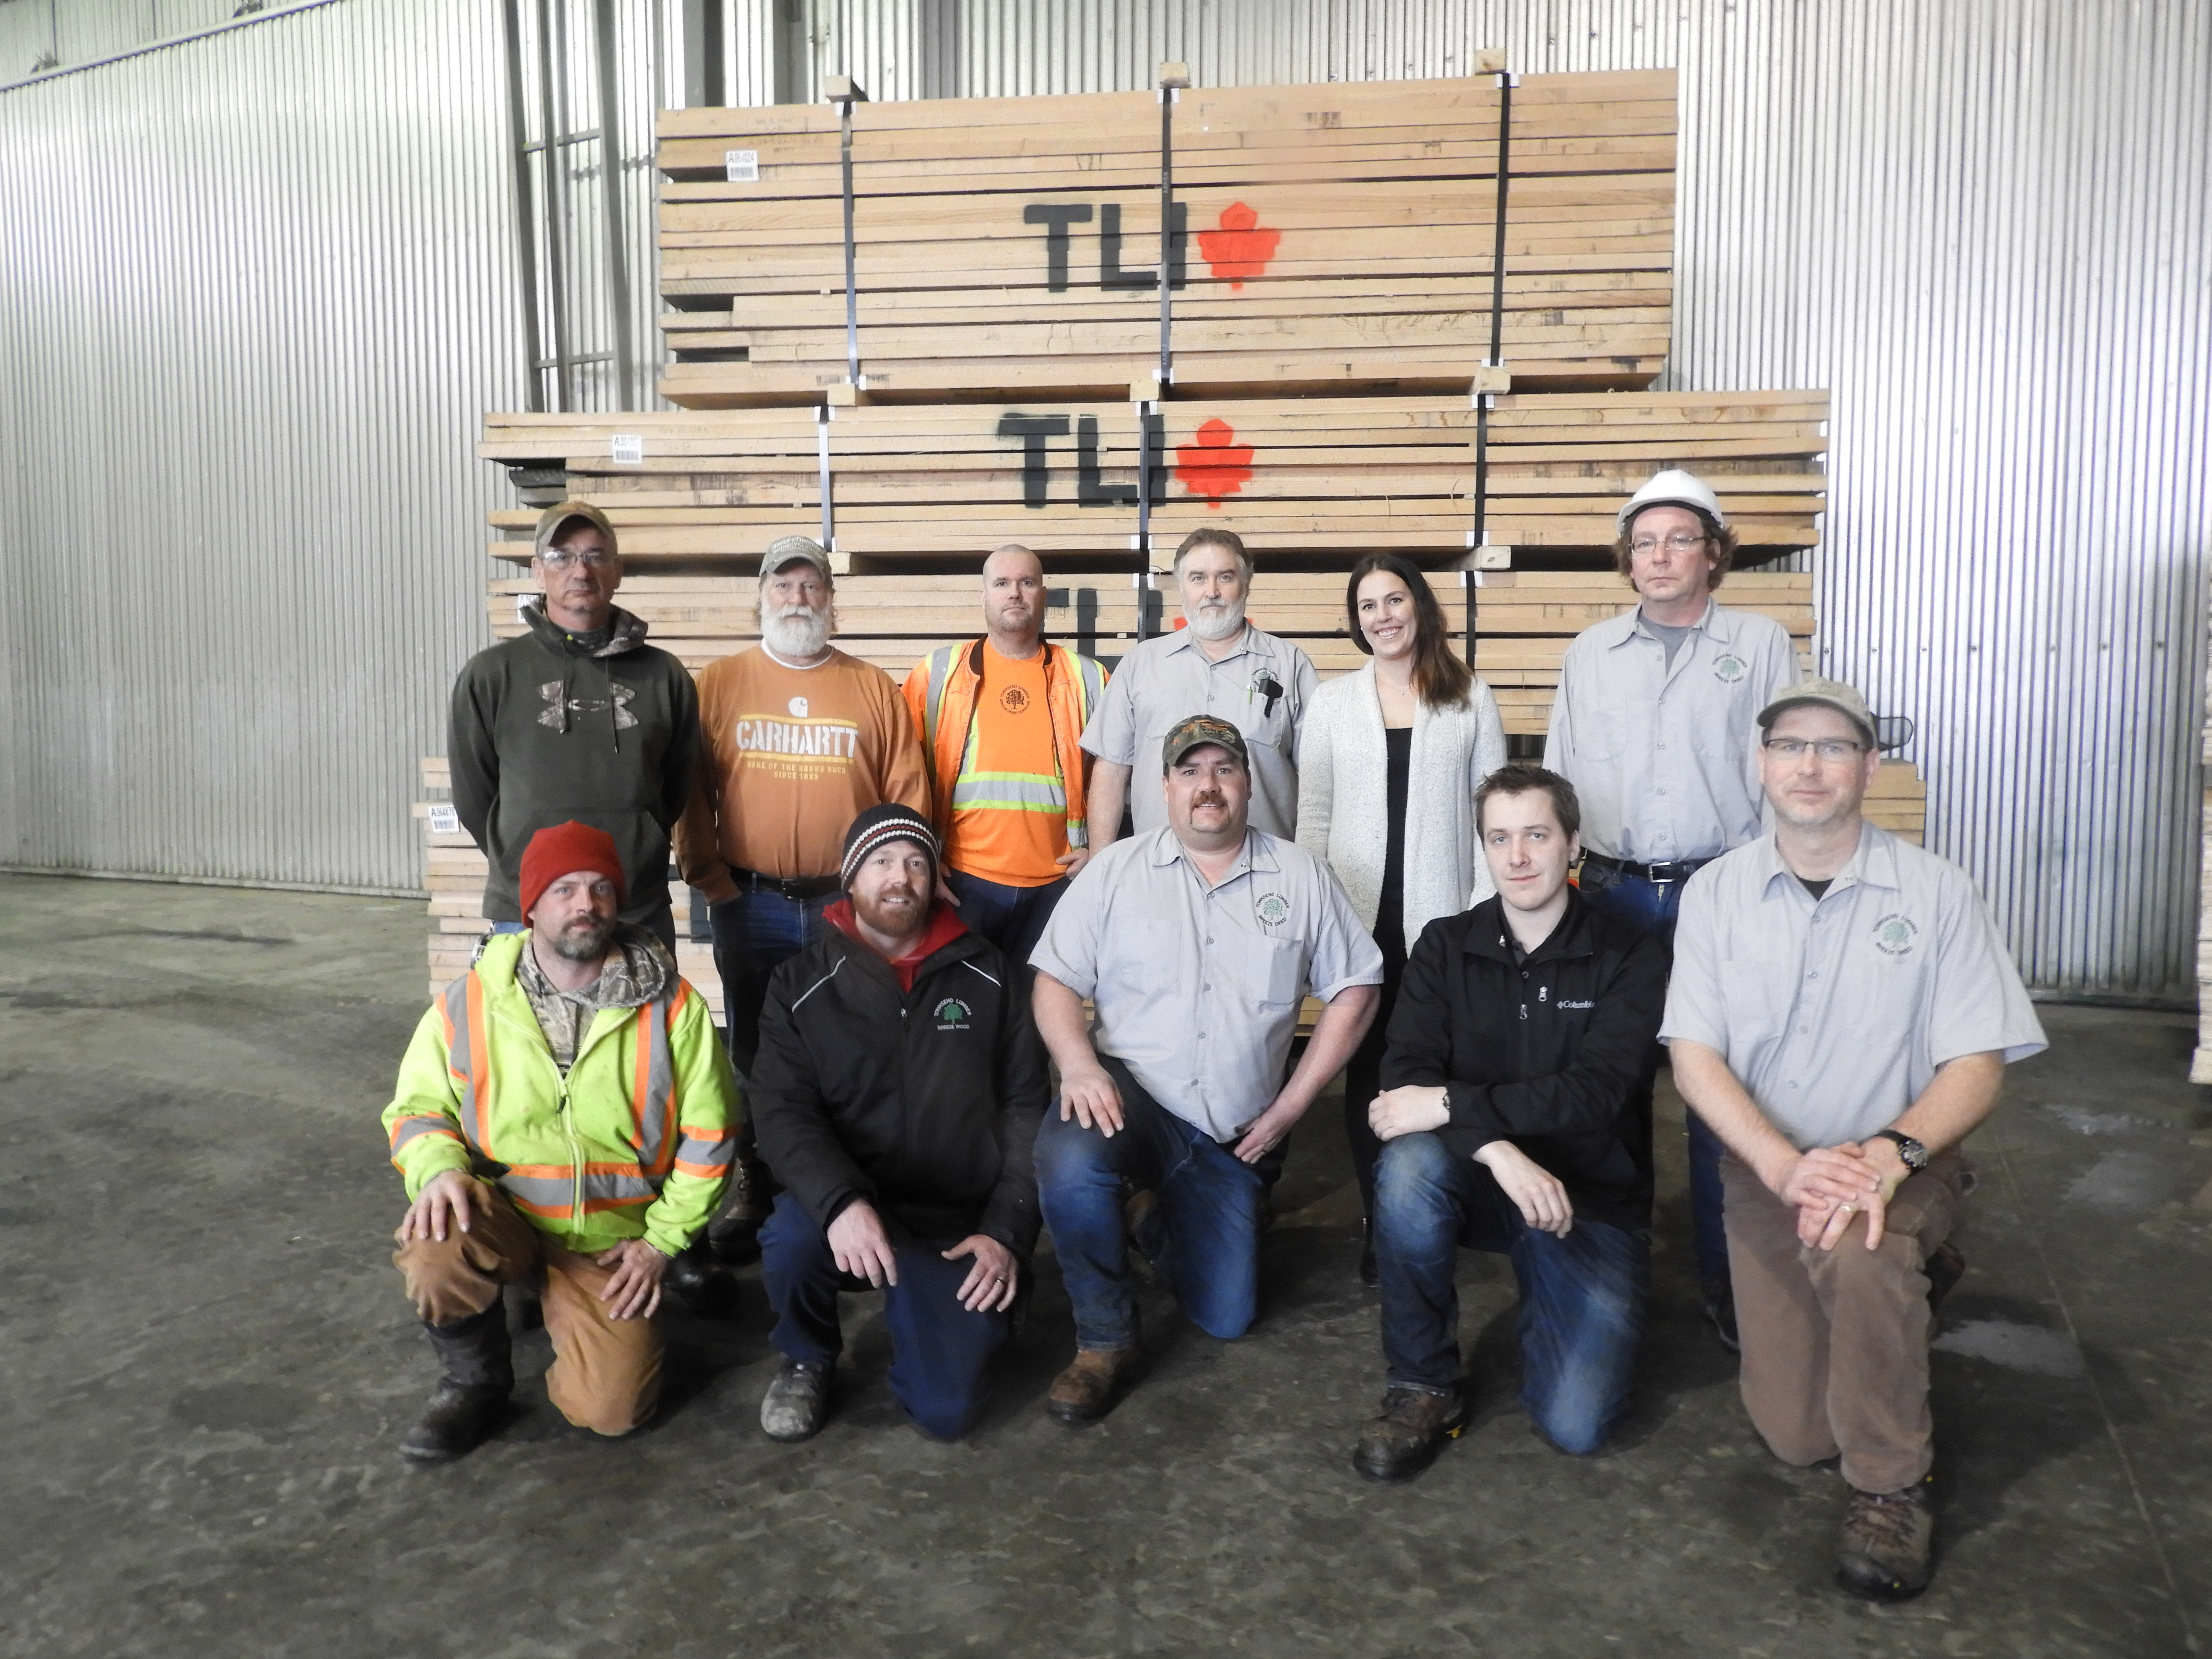 11 staff members posing in front of large pallet of wood with the TLI logo on it.